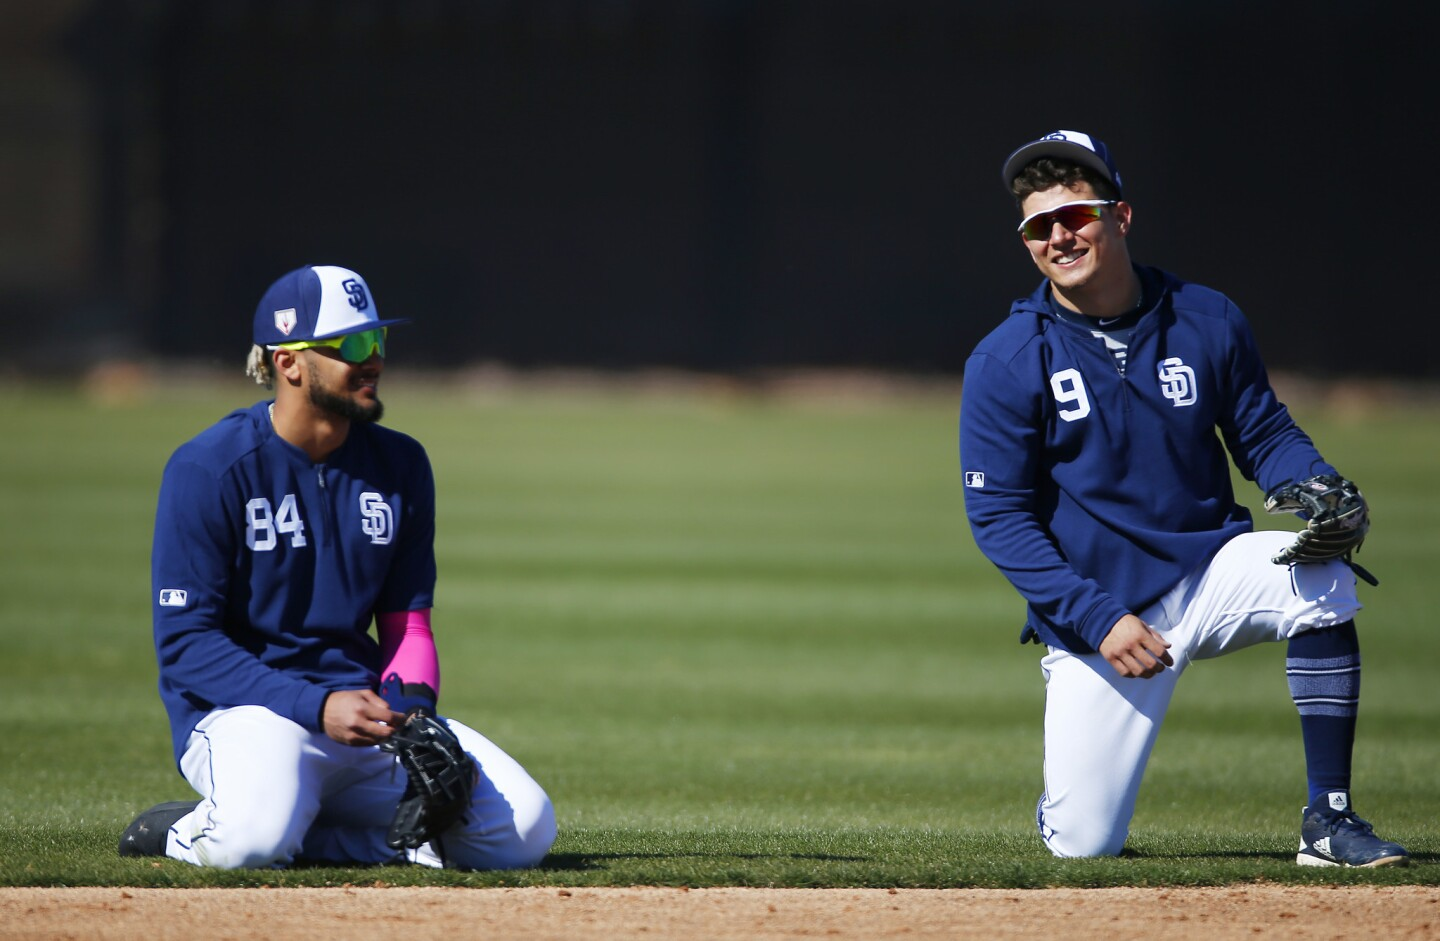 San Diego Padres infielders Fernando Tatis Jr., left, and Luis Urias wait for drills during a spring training practice on Feb. 20, 2019. (Photo by K.C. Alfred/San Diego Union-Tribune)